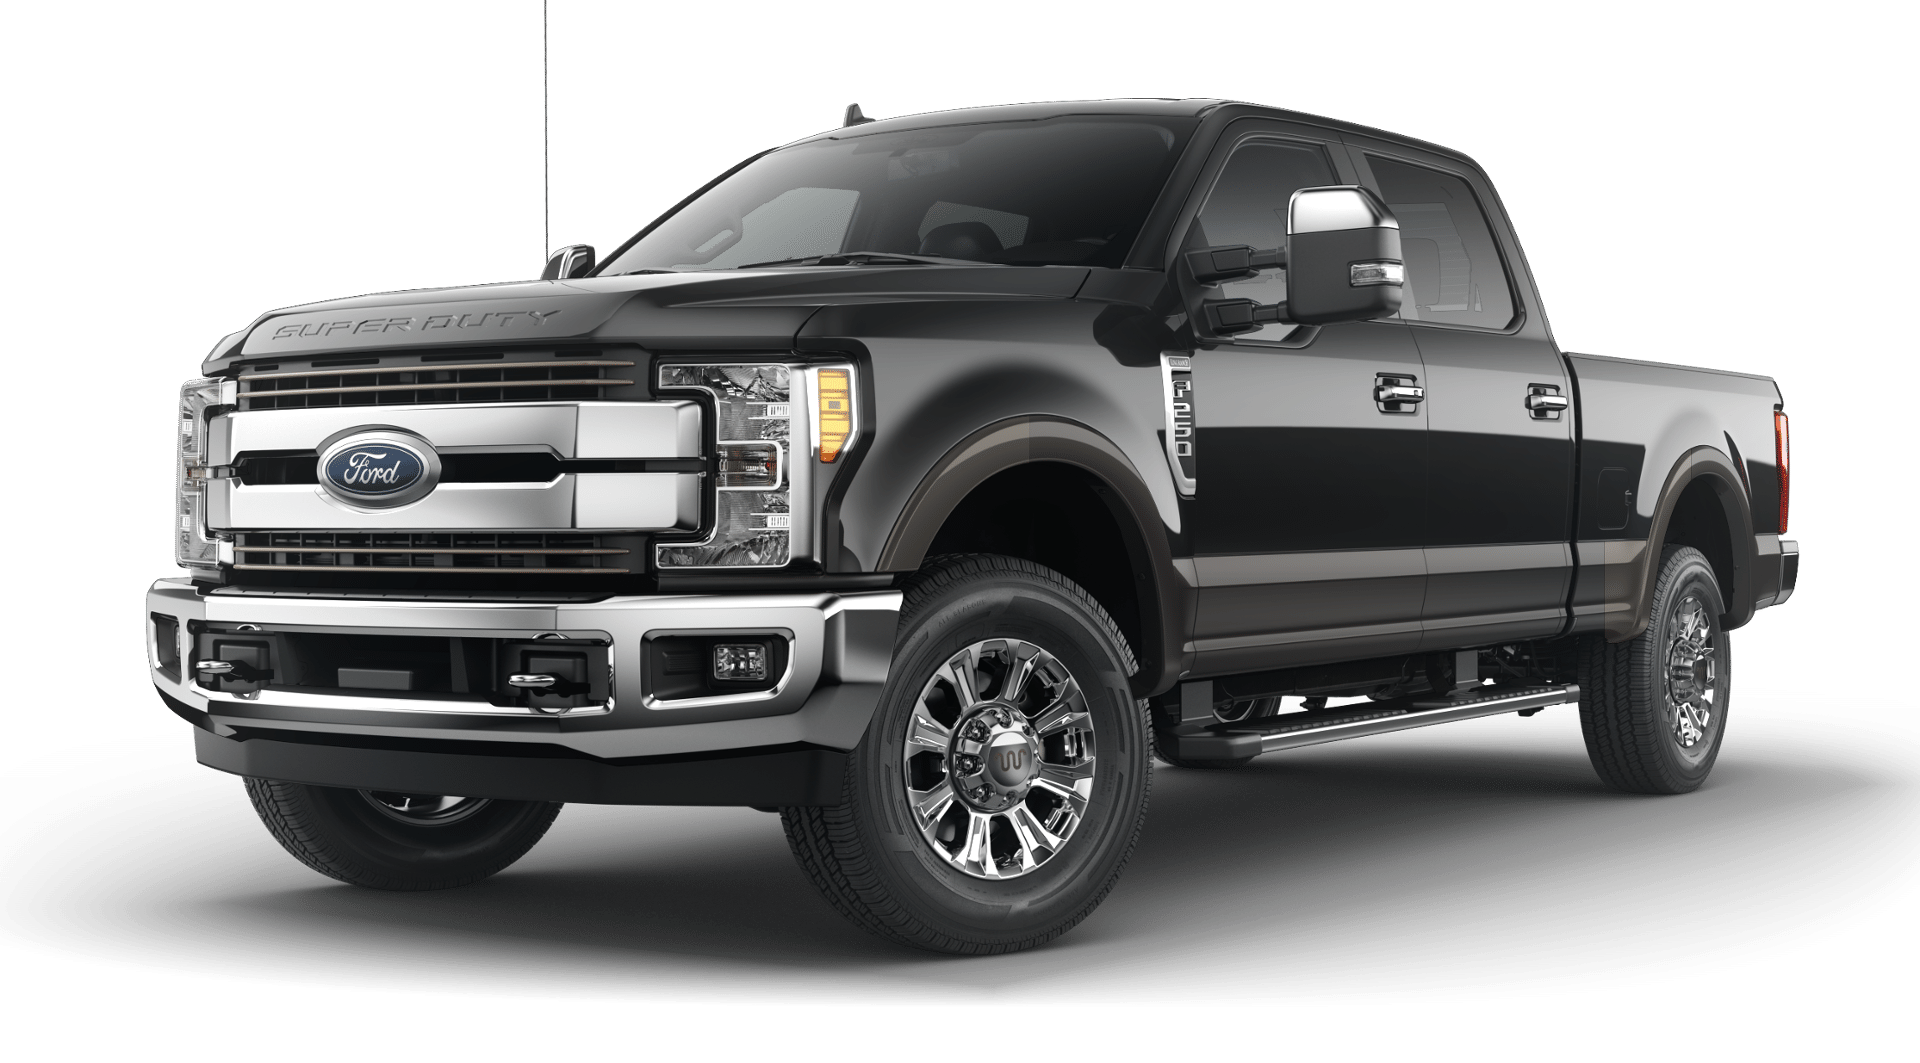 2020 Ford Super Duty F 250 Lariat Diesel Athens Ford Specials Athens Ga